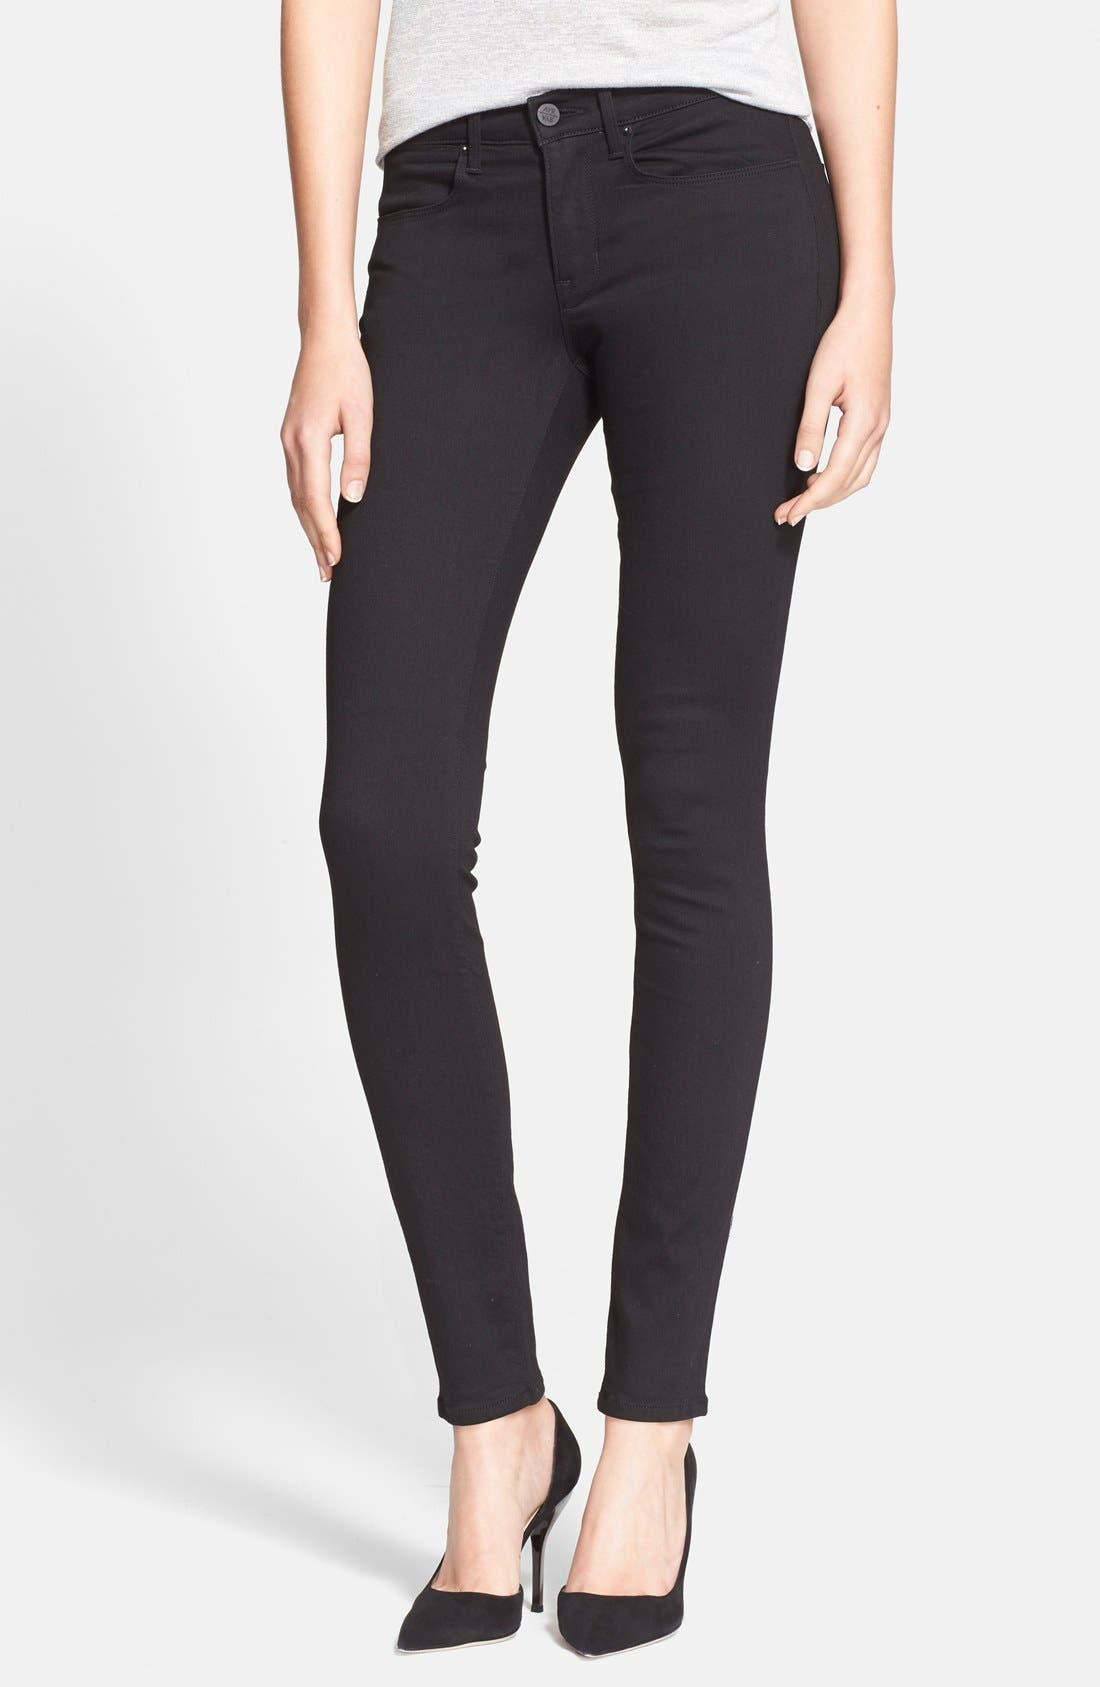 Main Image - AYR 'The Skinny' Skinny Jeans (Jet Black)